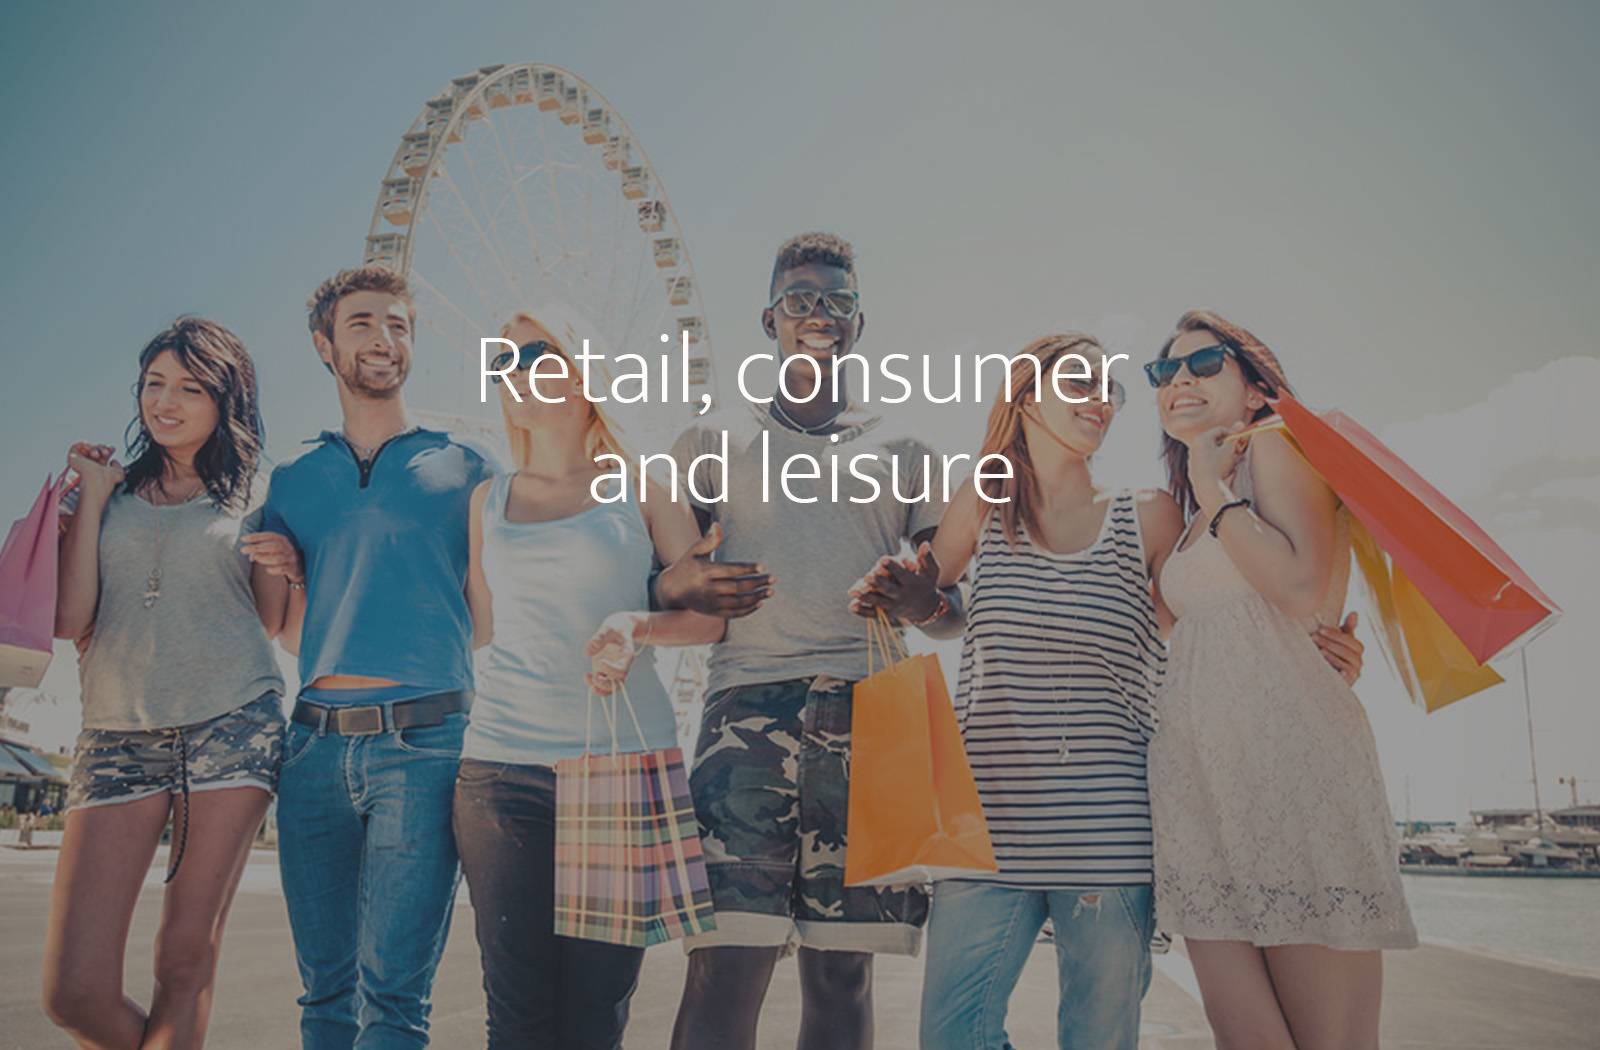 Recruitment, assessment & development for retail, consumer and leisure sectors